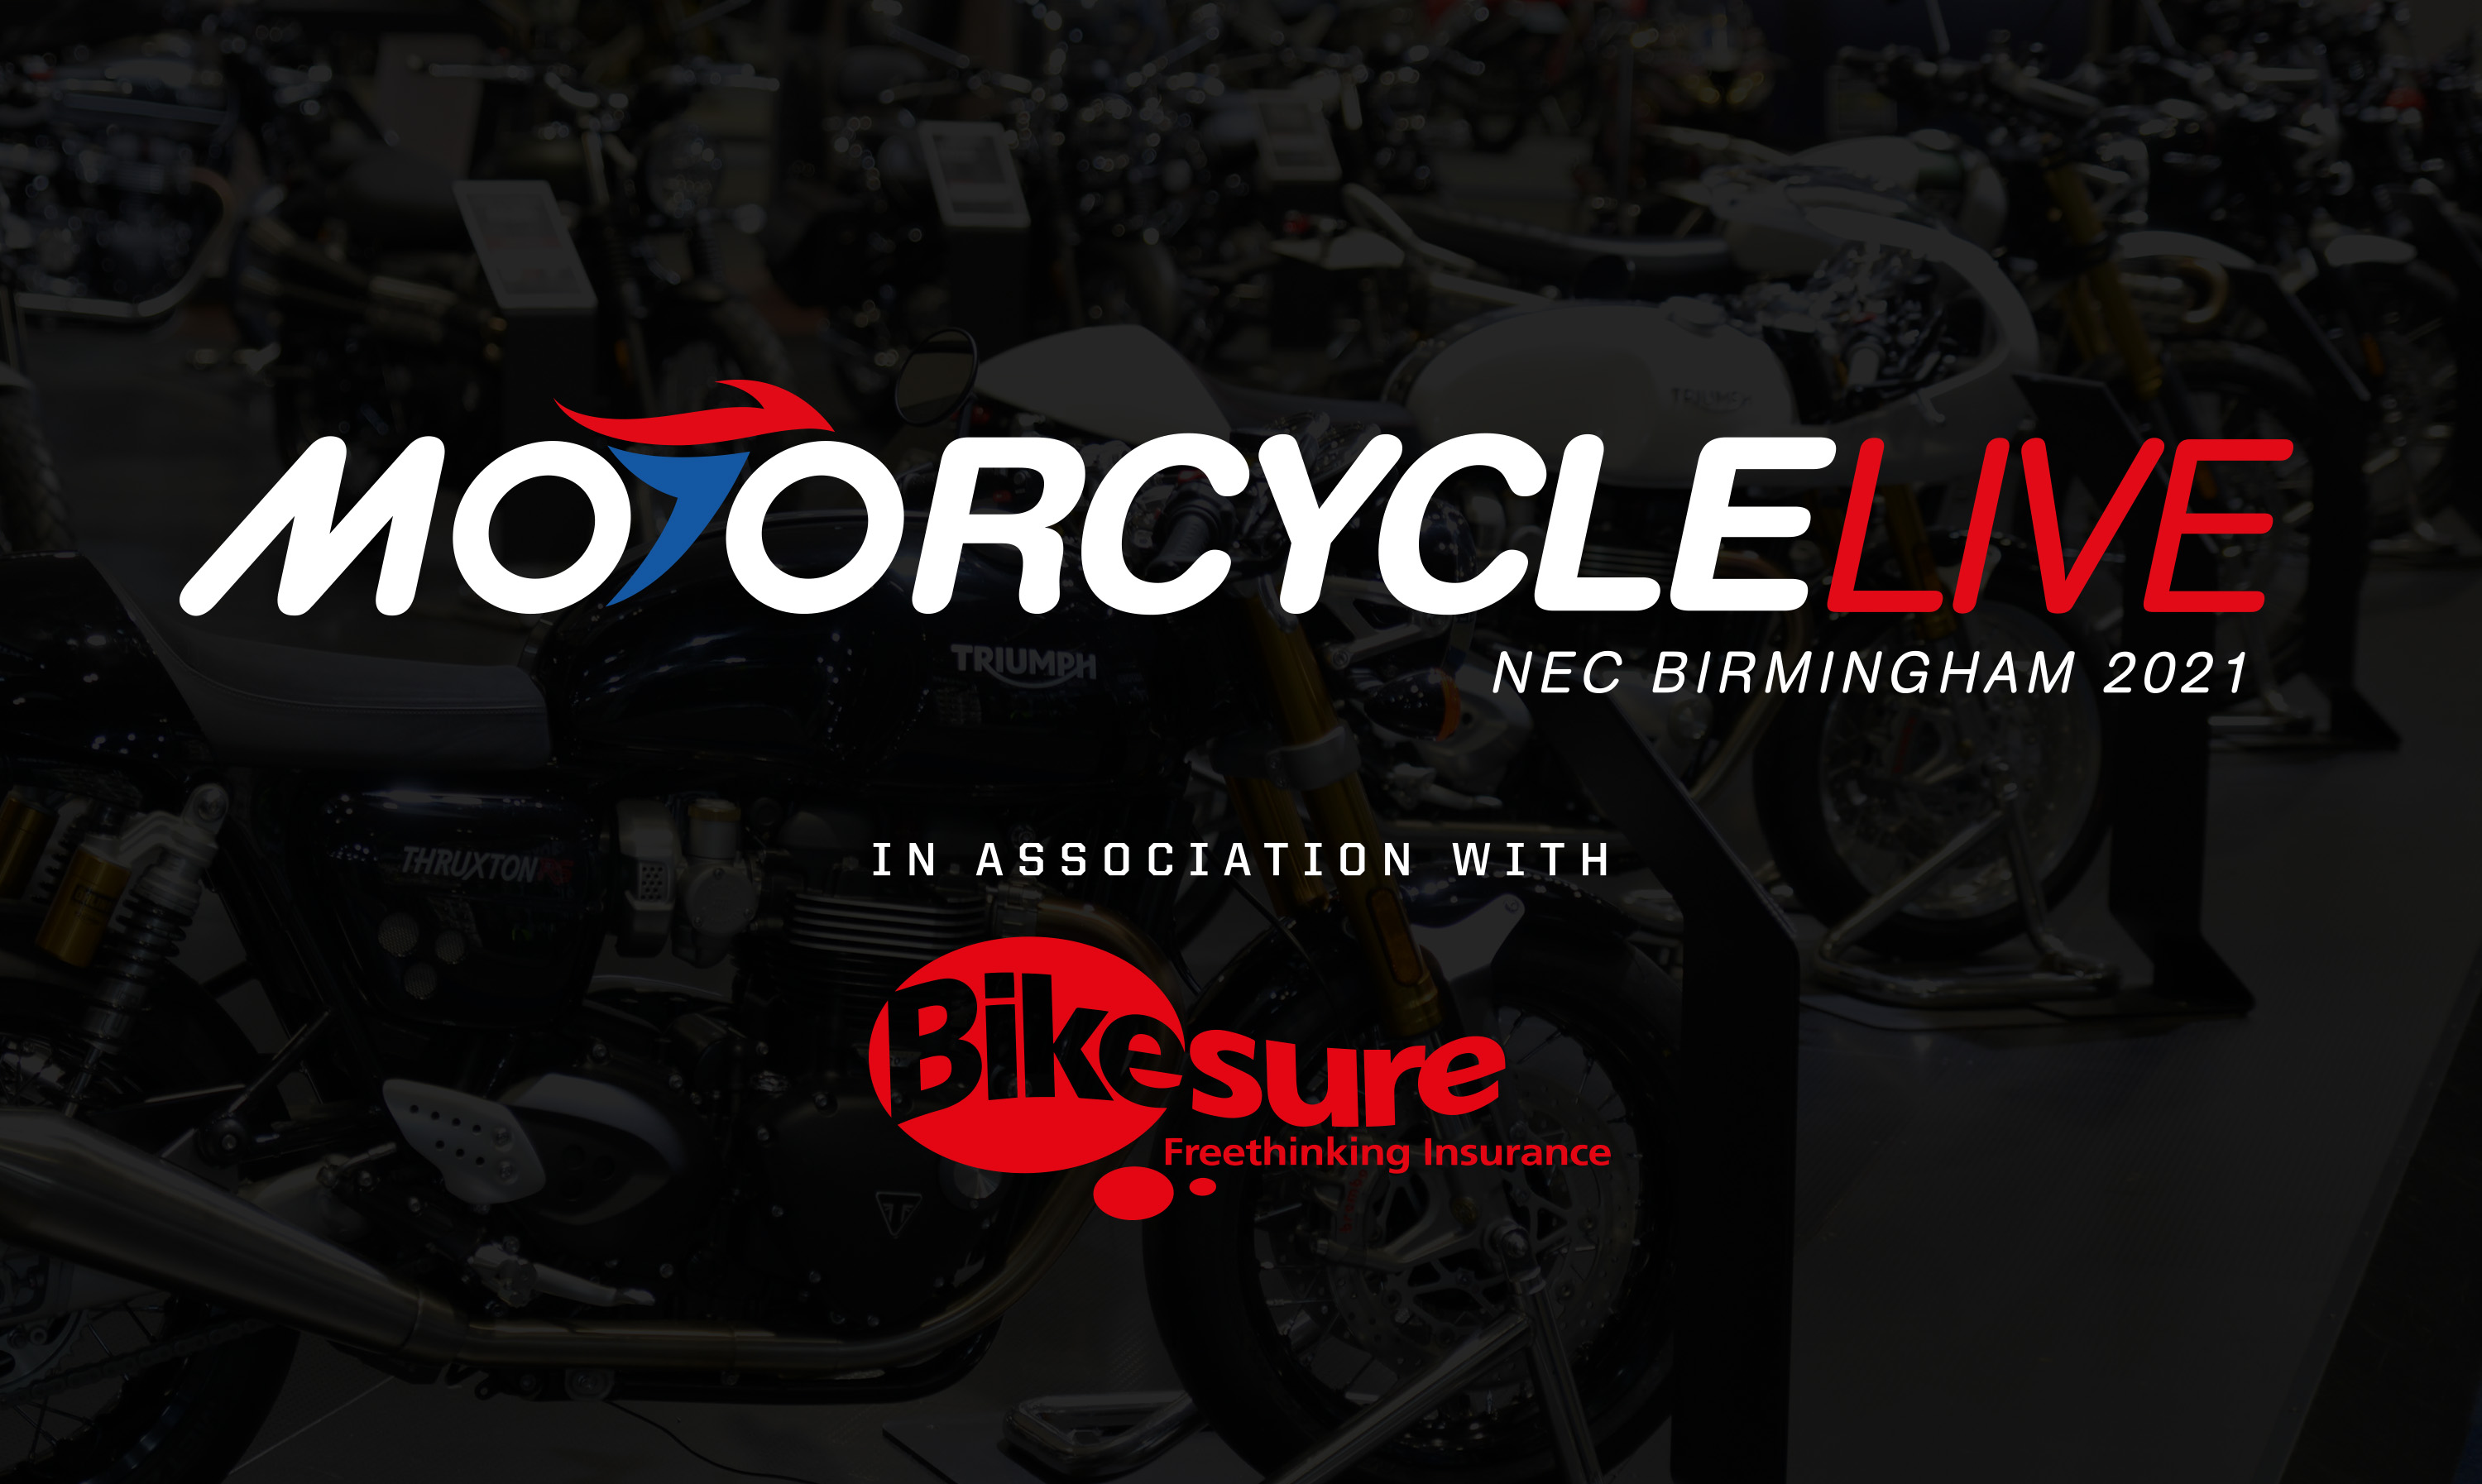 www.motorcyclelive.co.uk